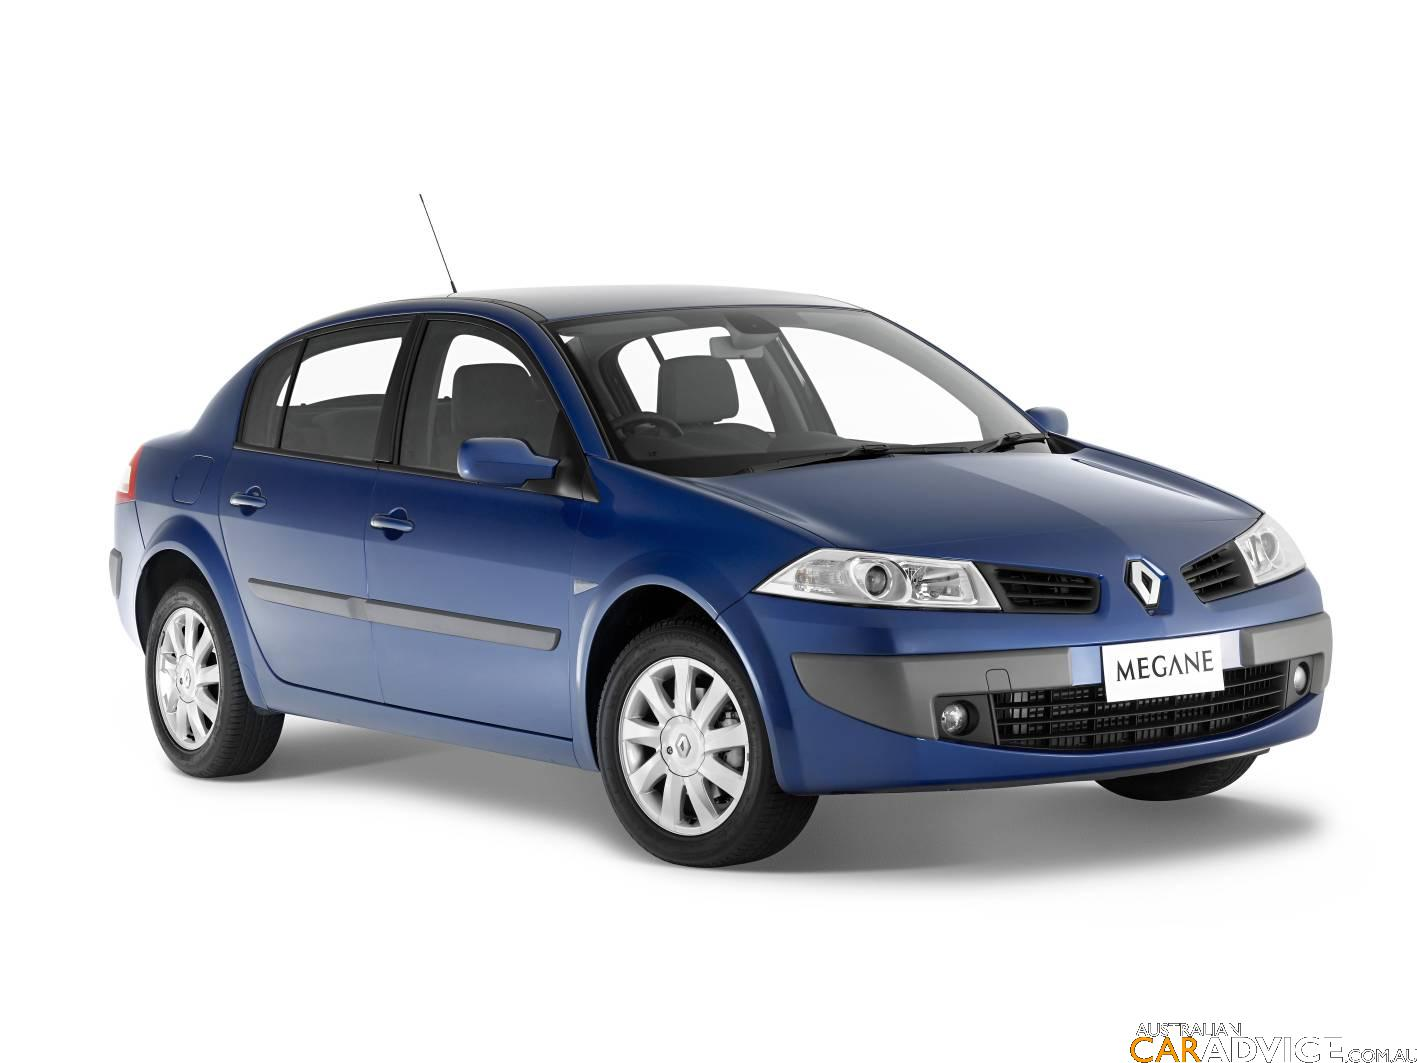 diesel renault megane sedan photos caradvice. Black Bedroom Furniture Sets. Home Design Ideas